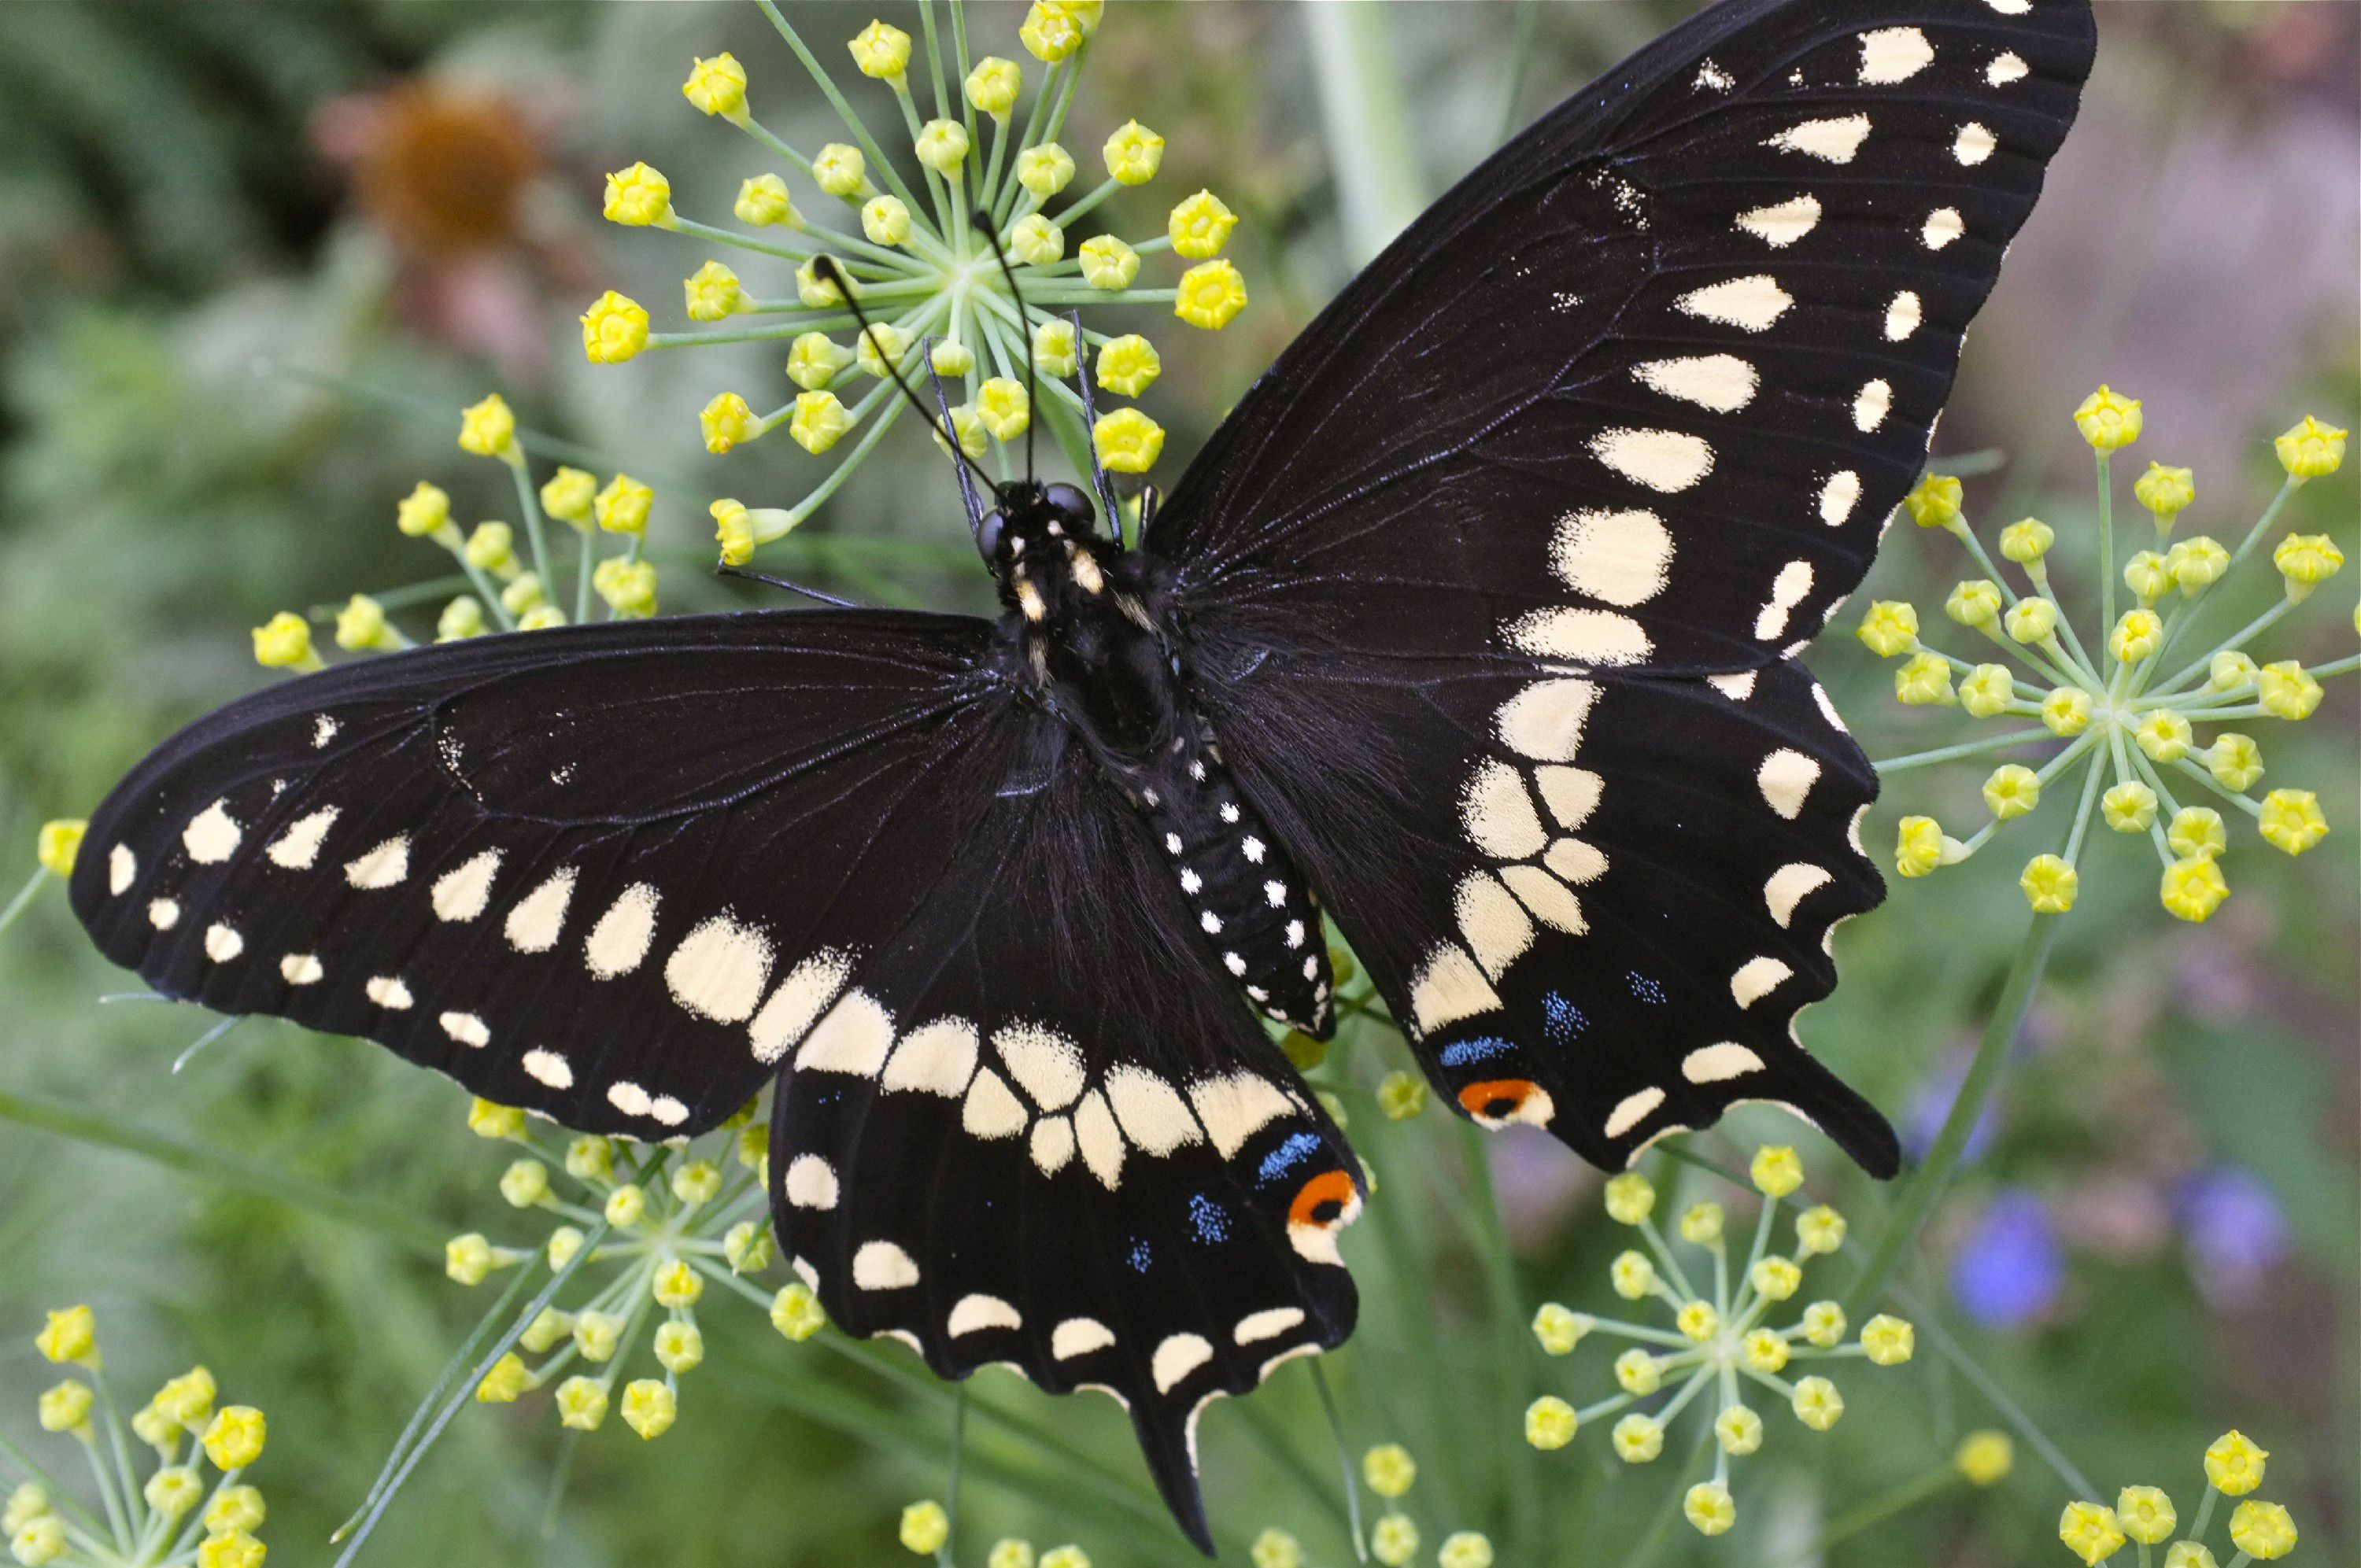 Black Butterfly High Quality Wallpapers